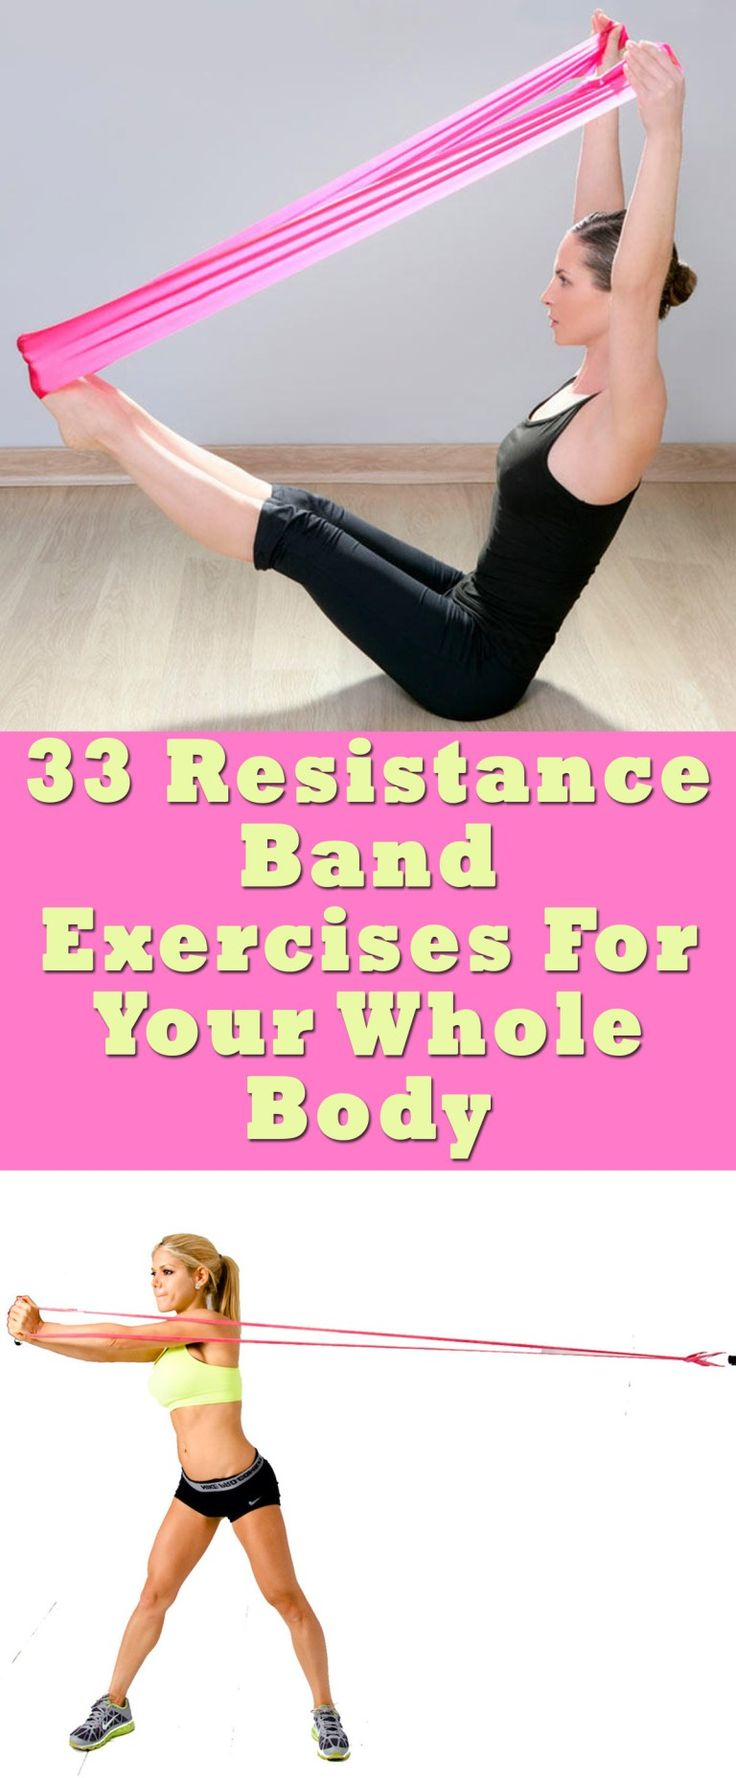 1000+ images about Resistance Band Exercise on Pinterest ...